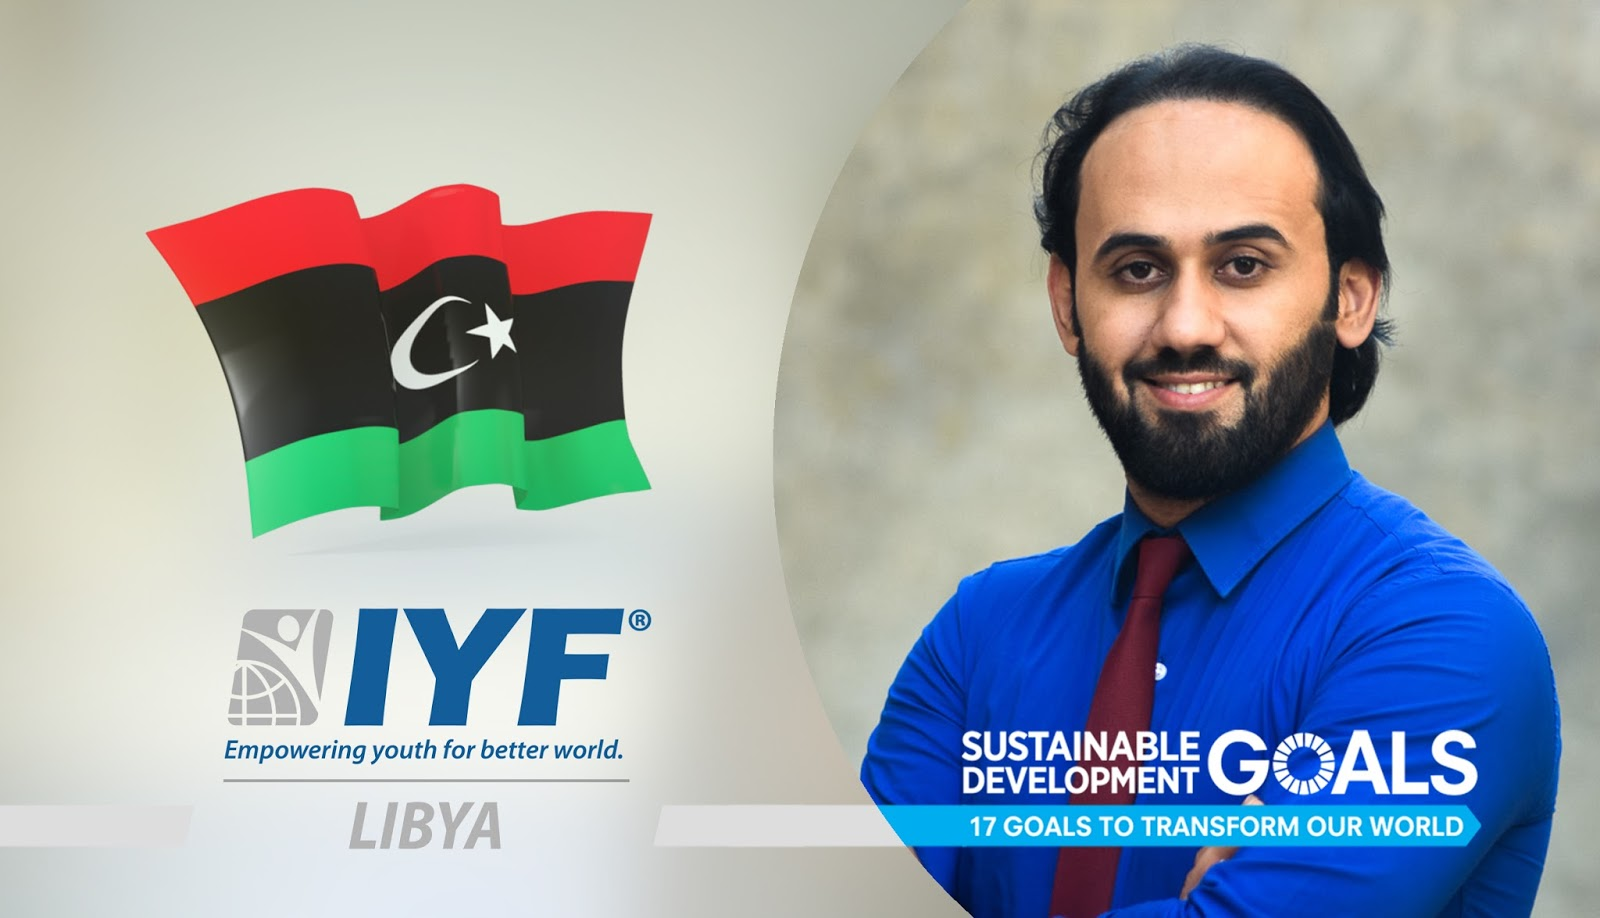 Fares Labedi, IYF Representative in Libya